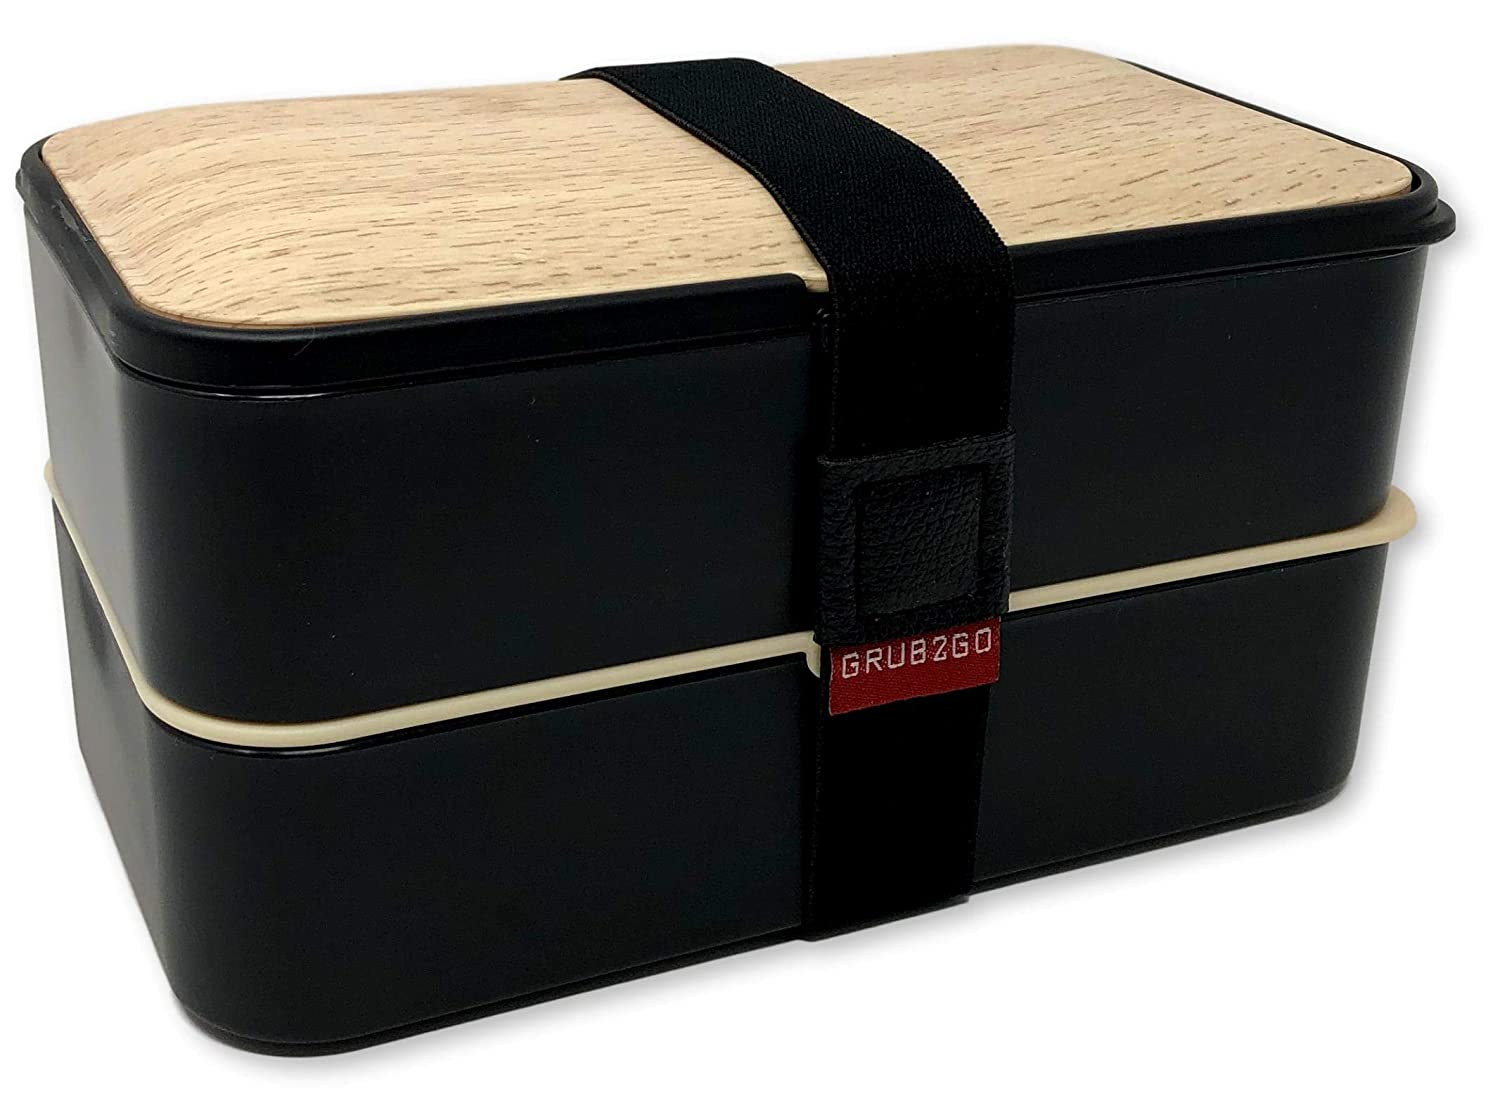 THE ORIGINAL Japanese Bento Box (Upgraded 2019 Black & Bamboo Design) w/FREE Bento Food Ideas Guide + 2 Dividers + Larger Utensils w/Holder - Leakproof Lunch Container